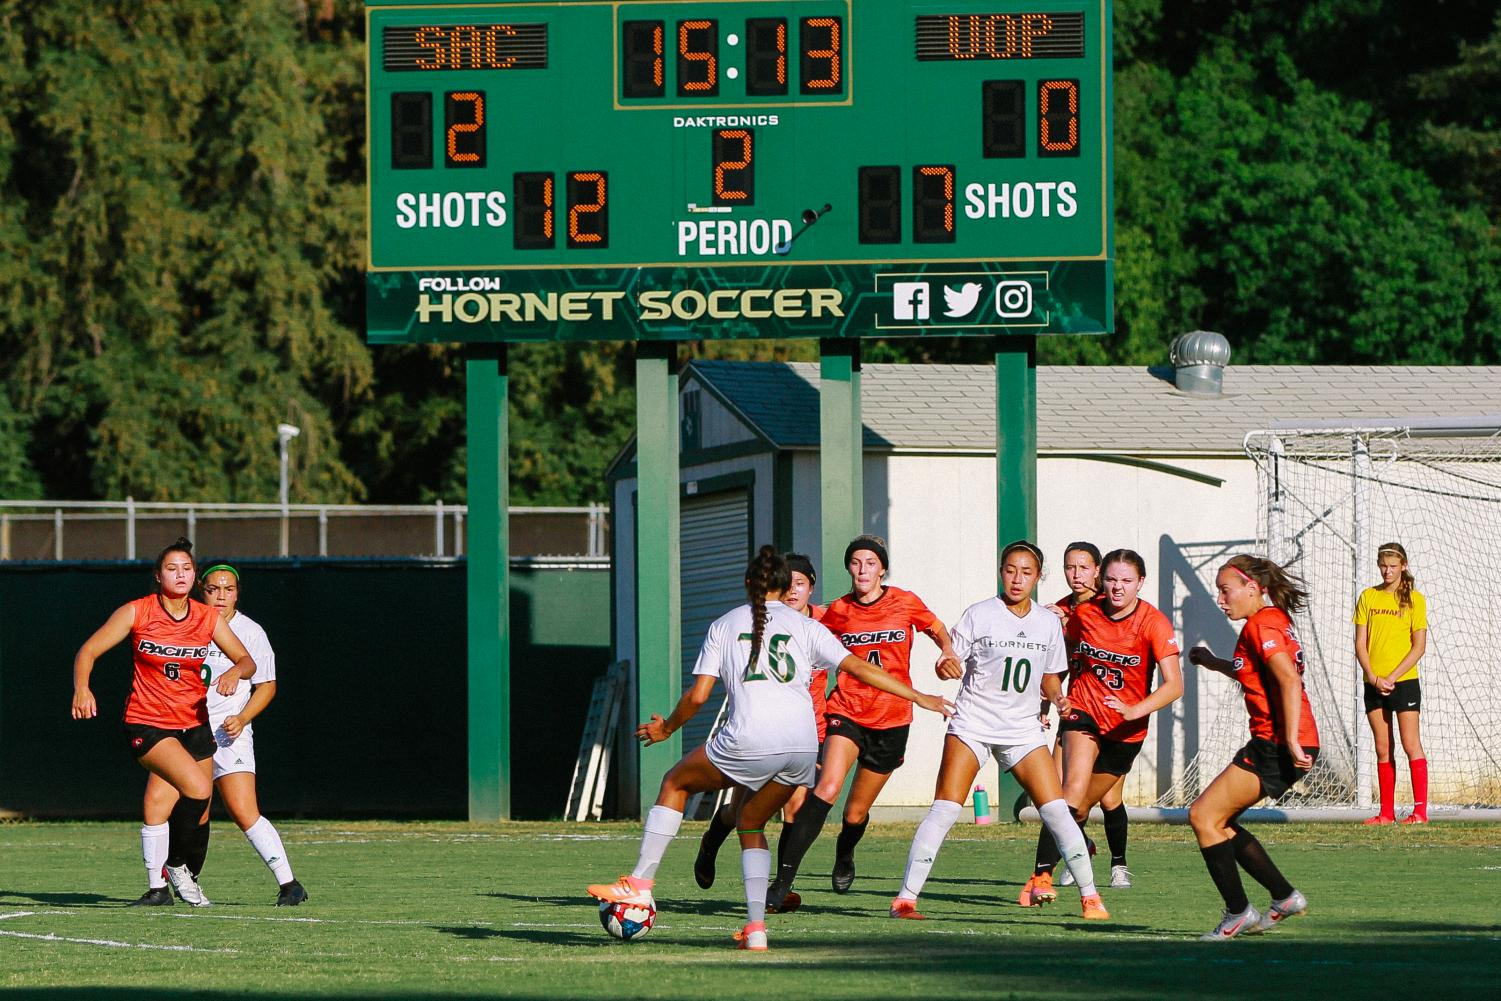 Sac State junior forwards Ariana Nino (#26) prepares to pass to teammate Tiffany Miras against Pacific on Thursday, Sept. 5 at Hornet Field. Nino scored one goal to help lead the Hornets to the 2-0 win.